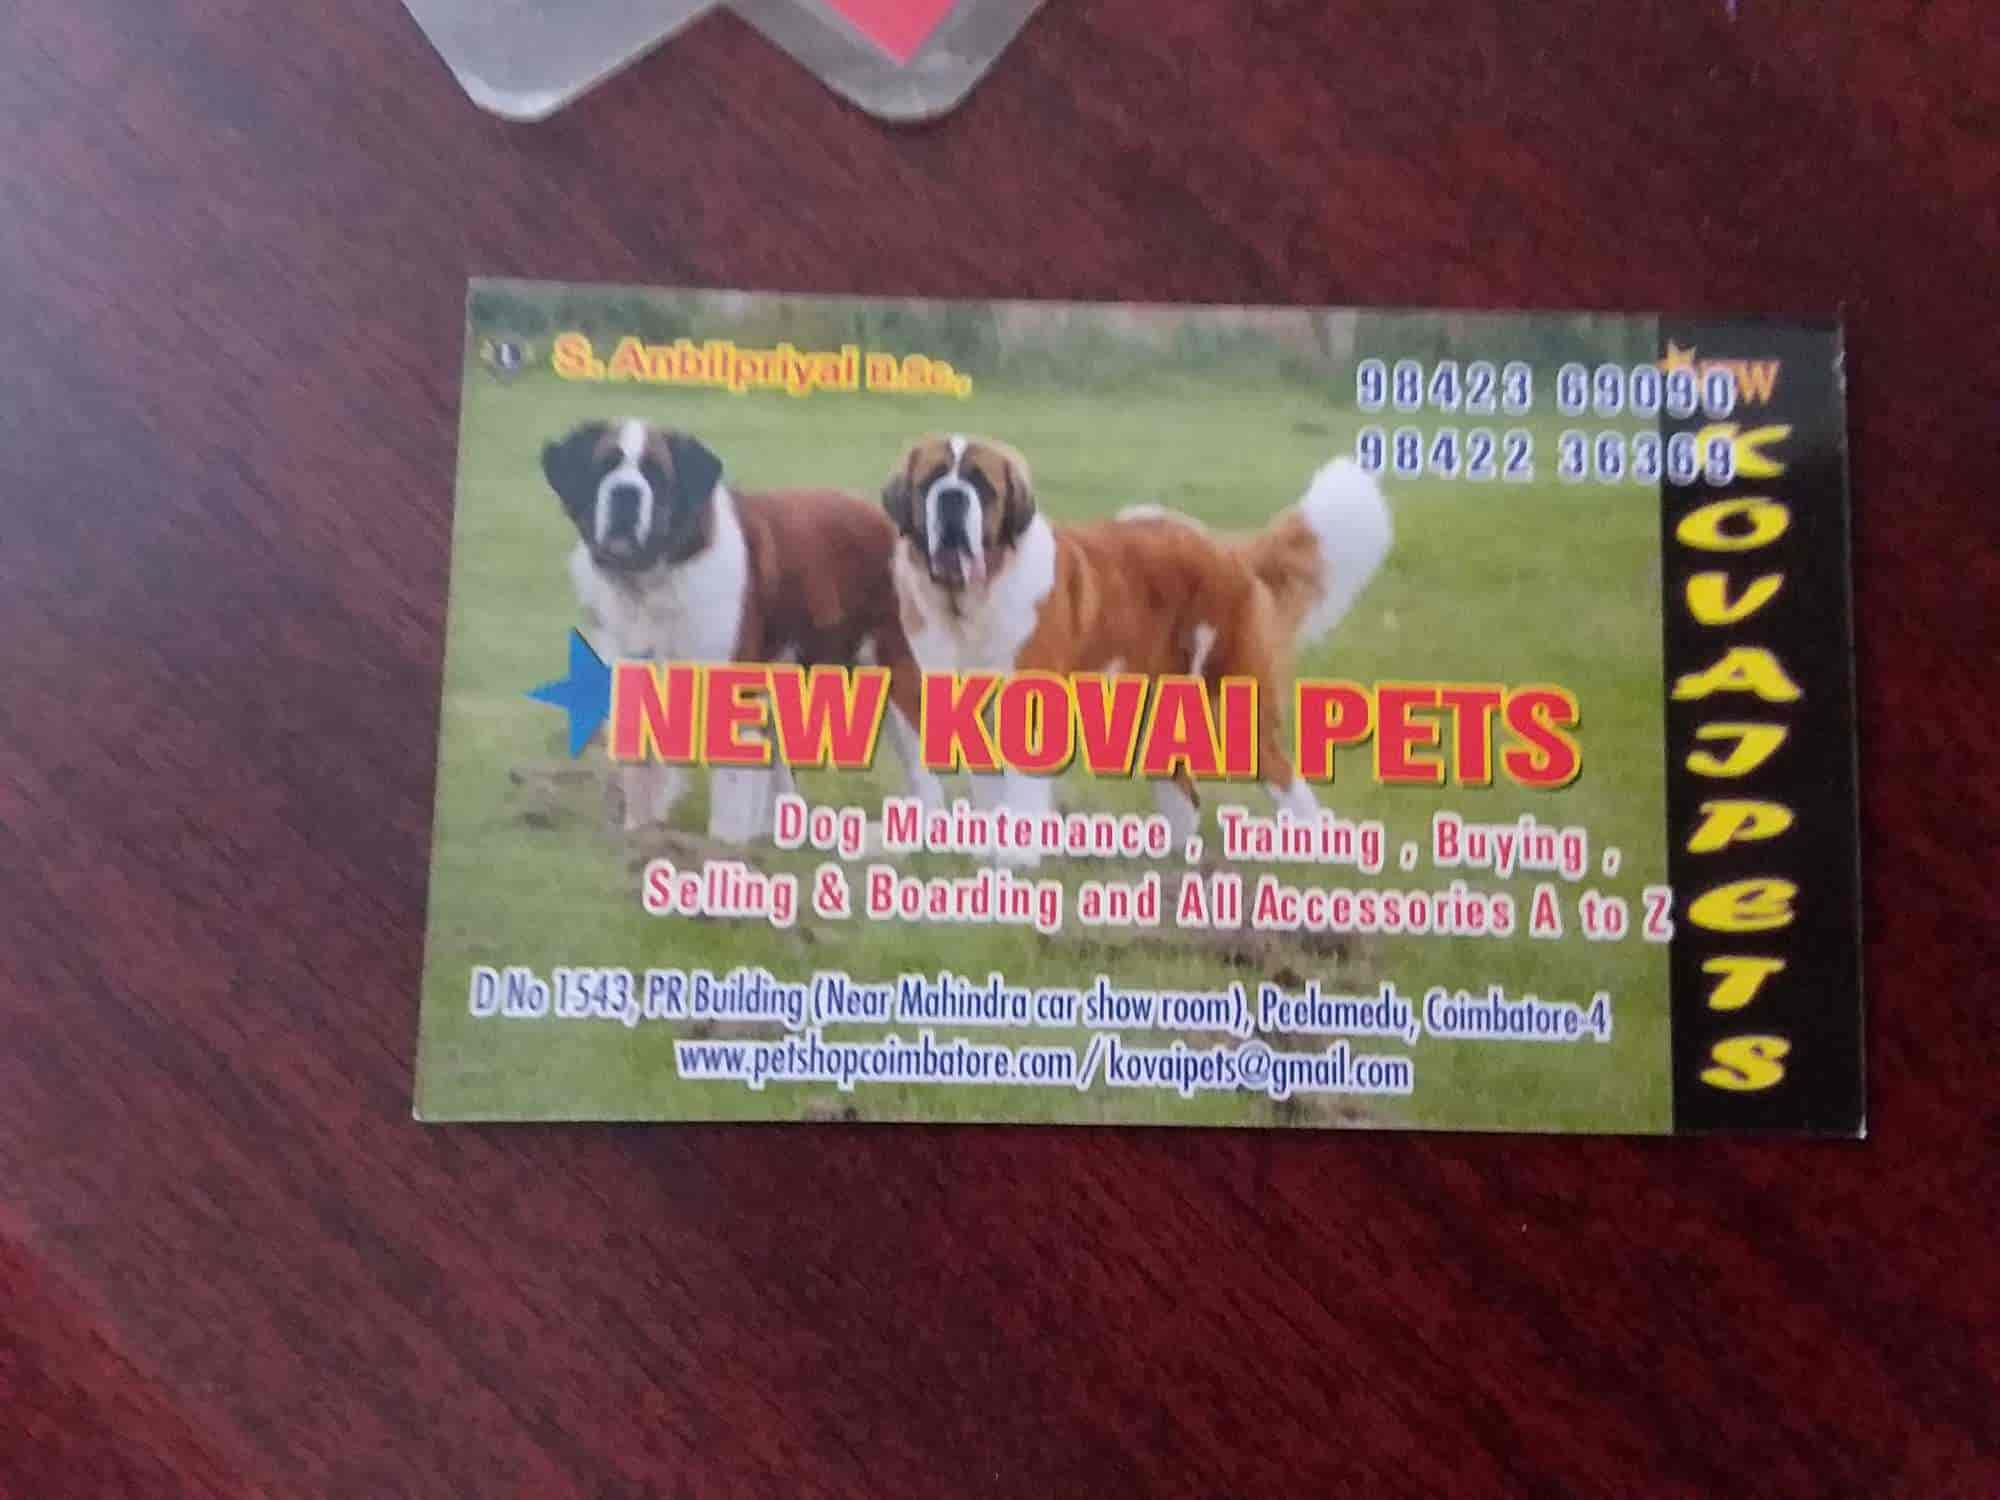 New Kovai Pets - Pet Shops For Dog - Book Appointment Online - Pet